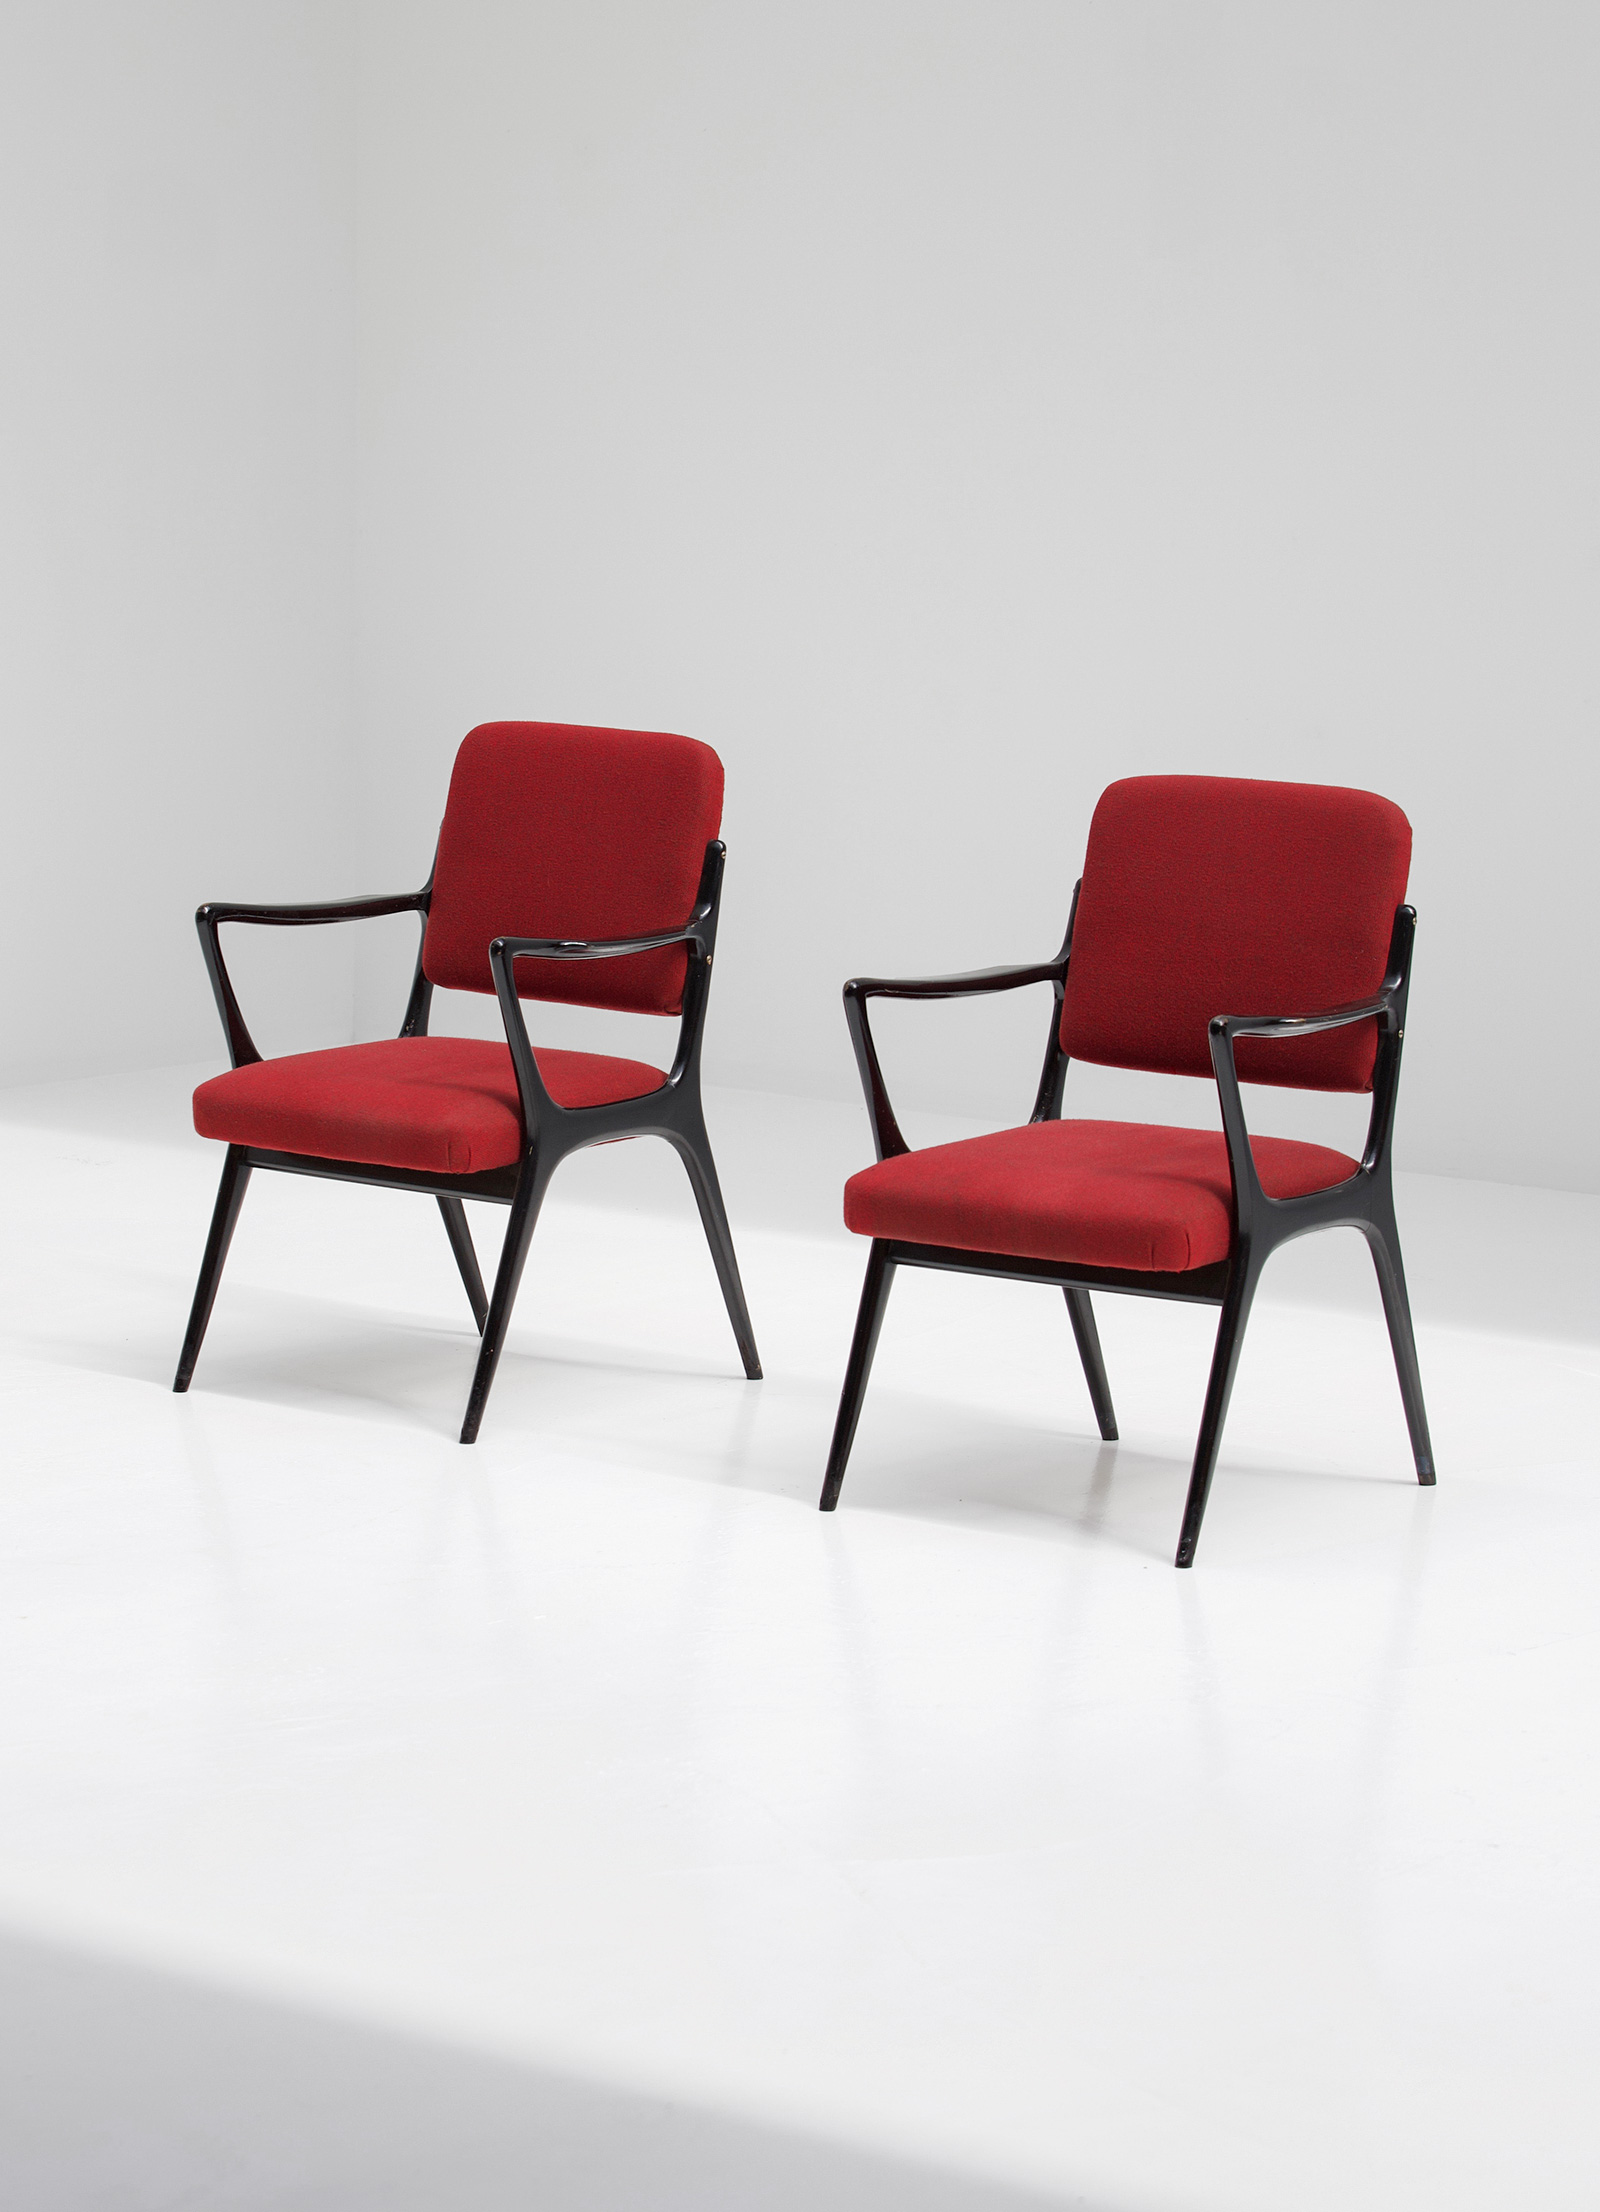 Two Chairs By Alfred Hendrickx for Belformimage 1